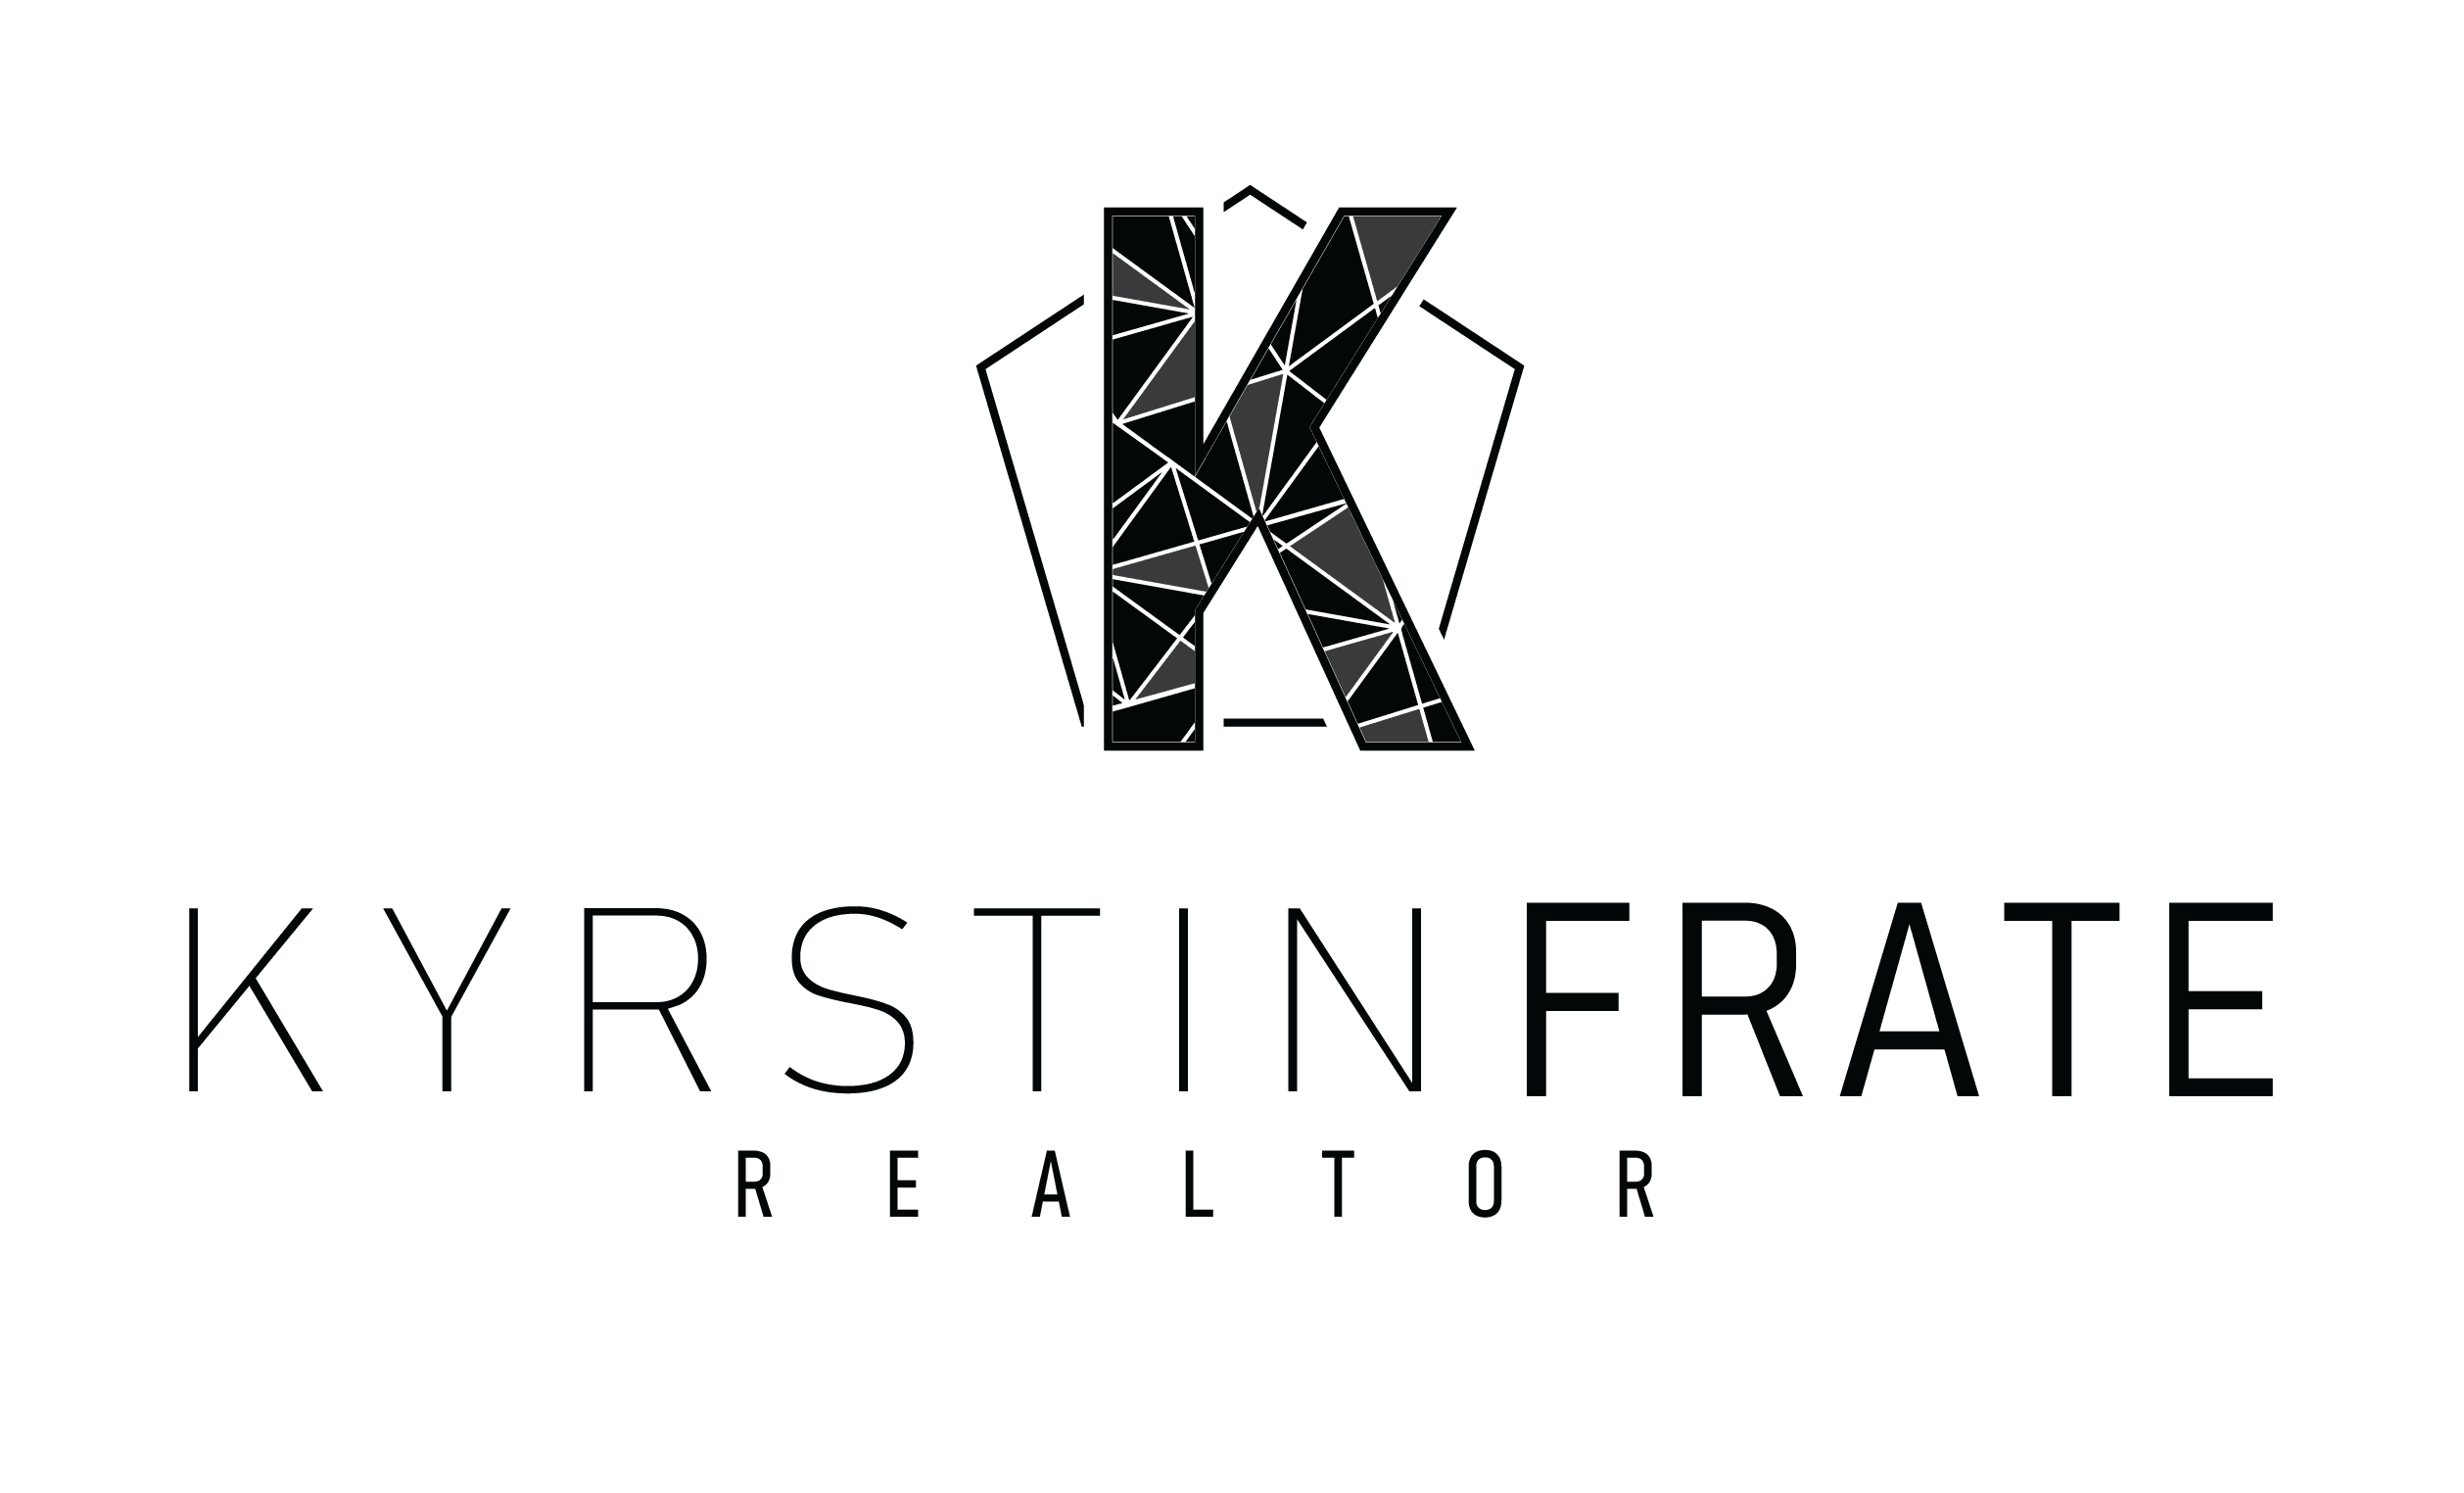 Kyrstin Frate_Transparent Bckg_Main Logo B (1) Opens in new window